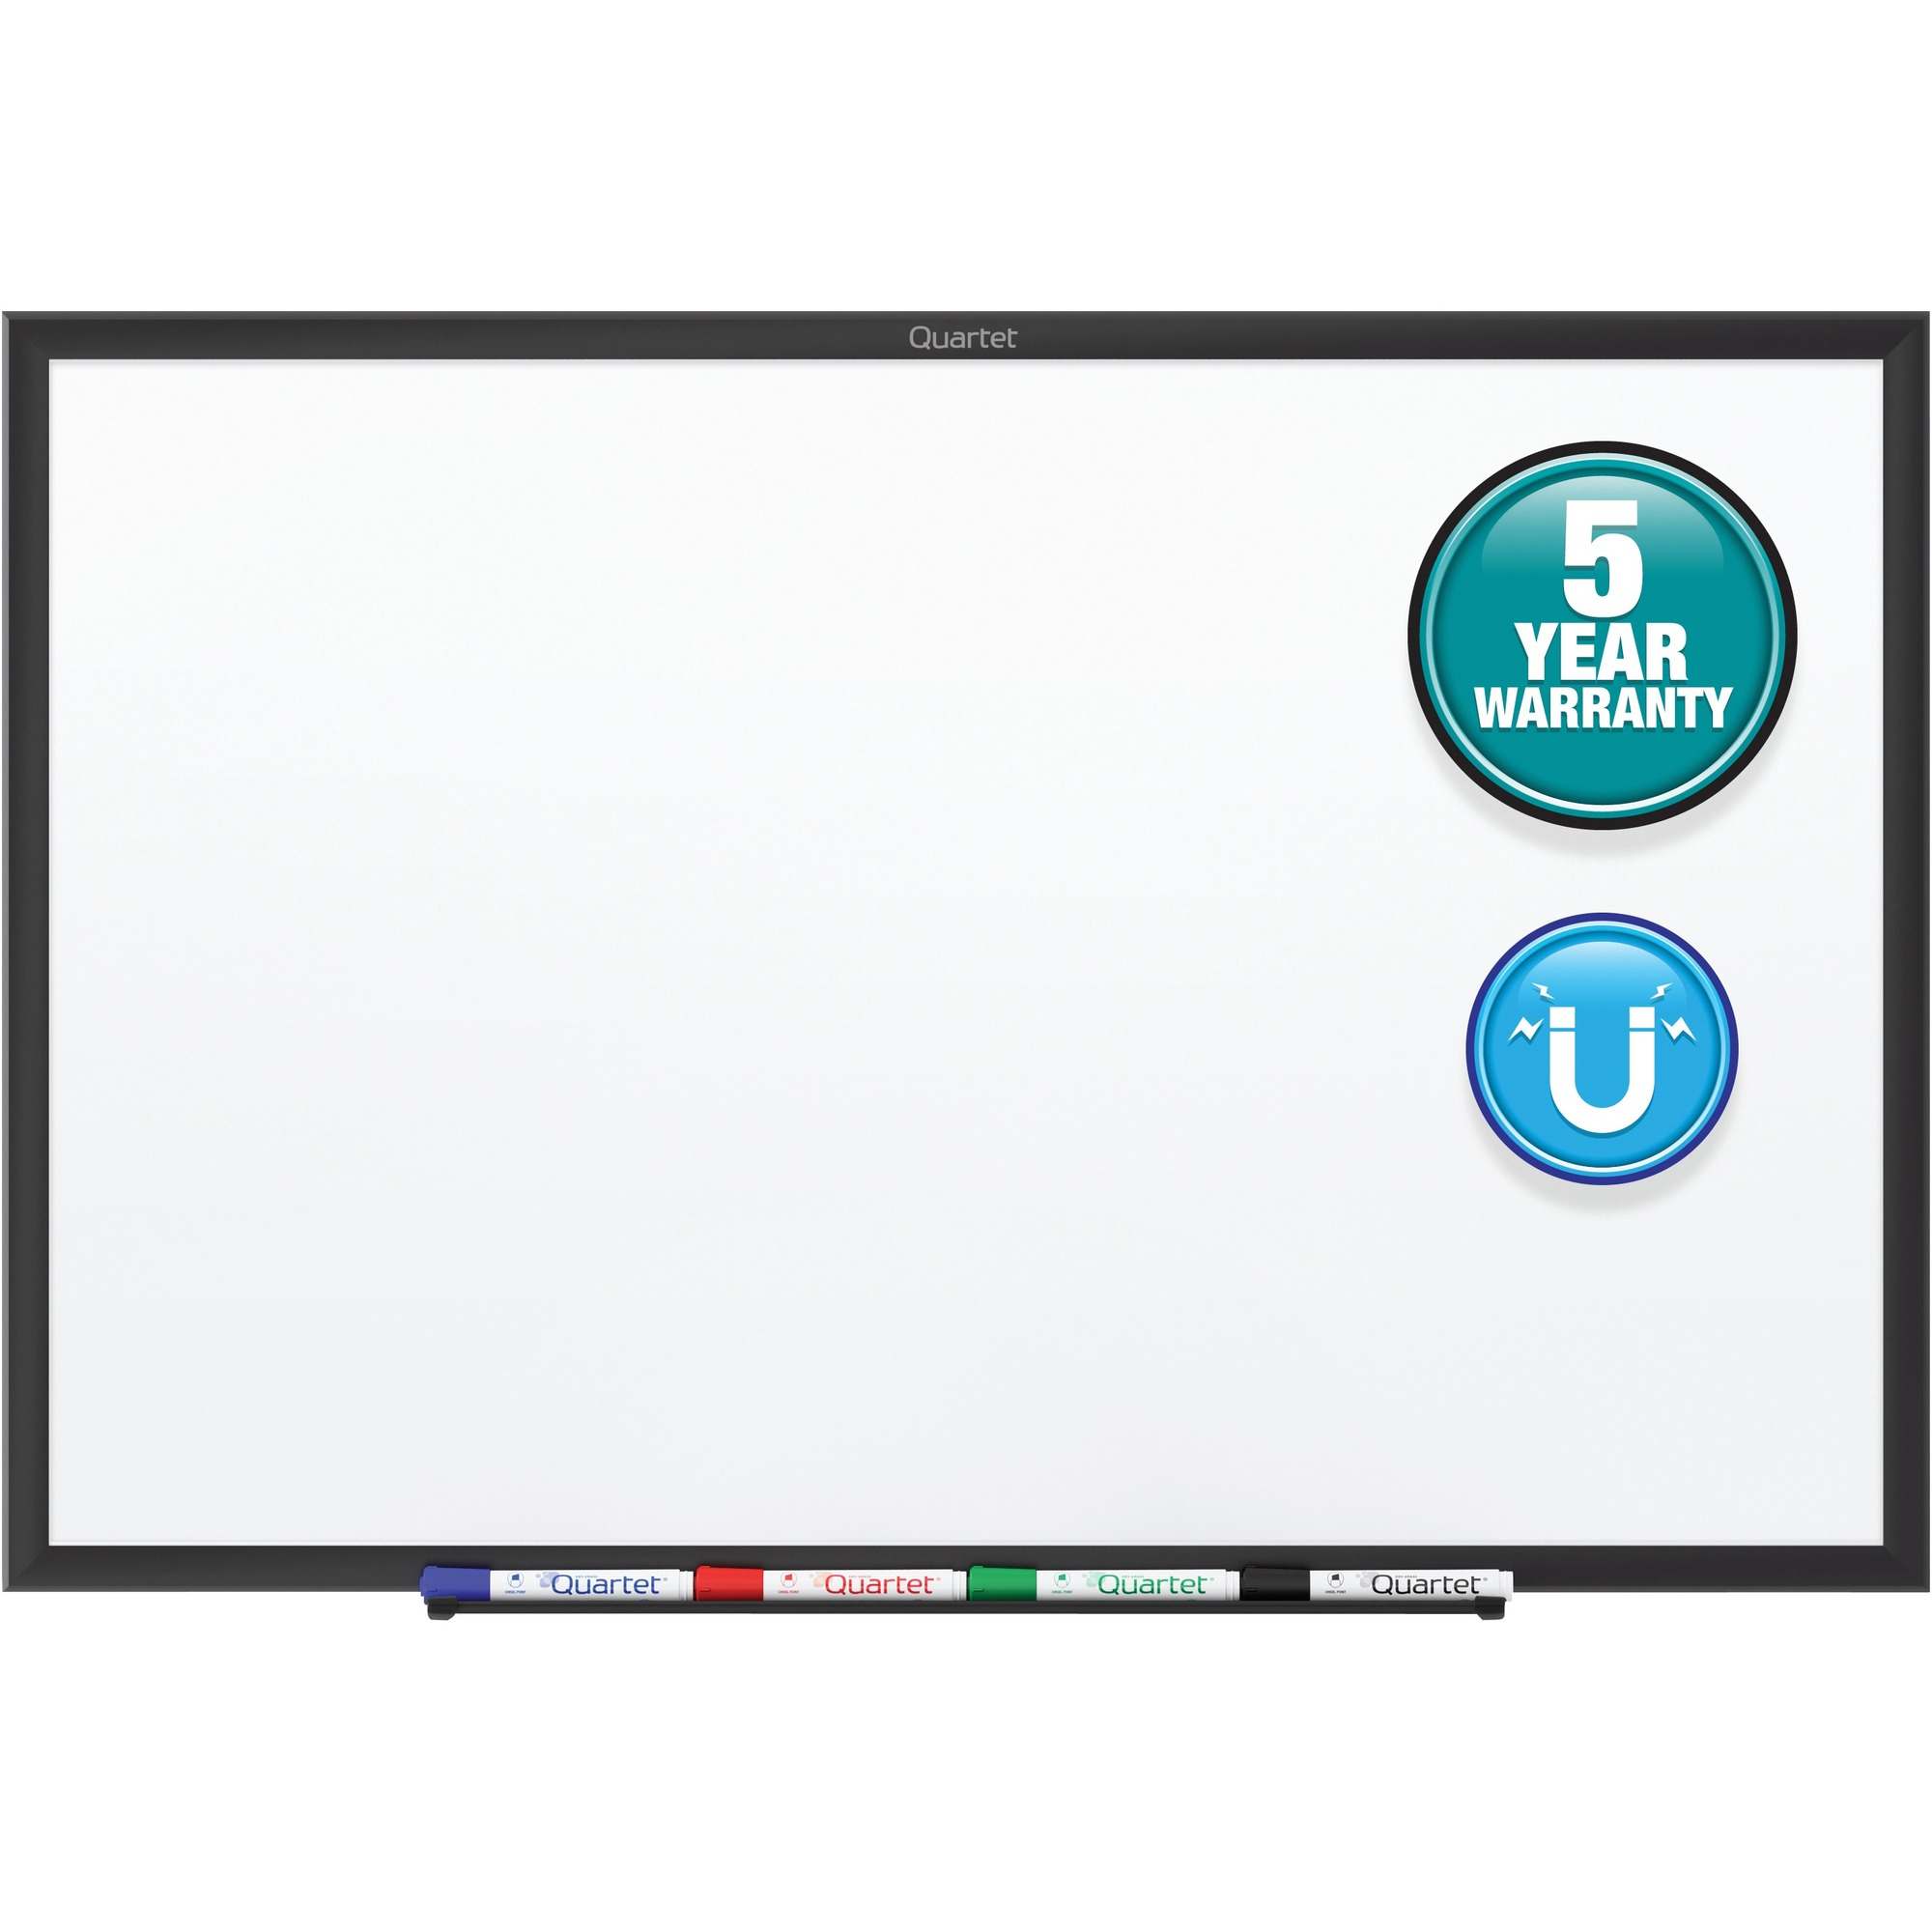 Acco Brands Corporation Quartet® Classic Magnetic Whiteboard - 48 (4 Ft) Width X 36 (3 Ft) Height - White Painted Steel Surface - Black Aluminum Frame - Horizontal/vertical - 1 Each